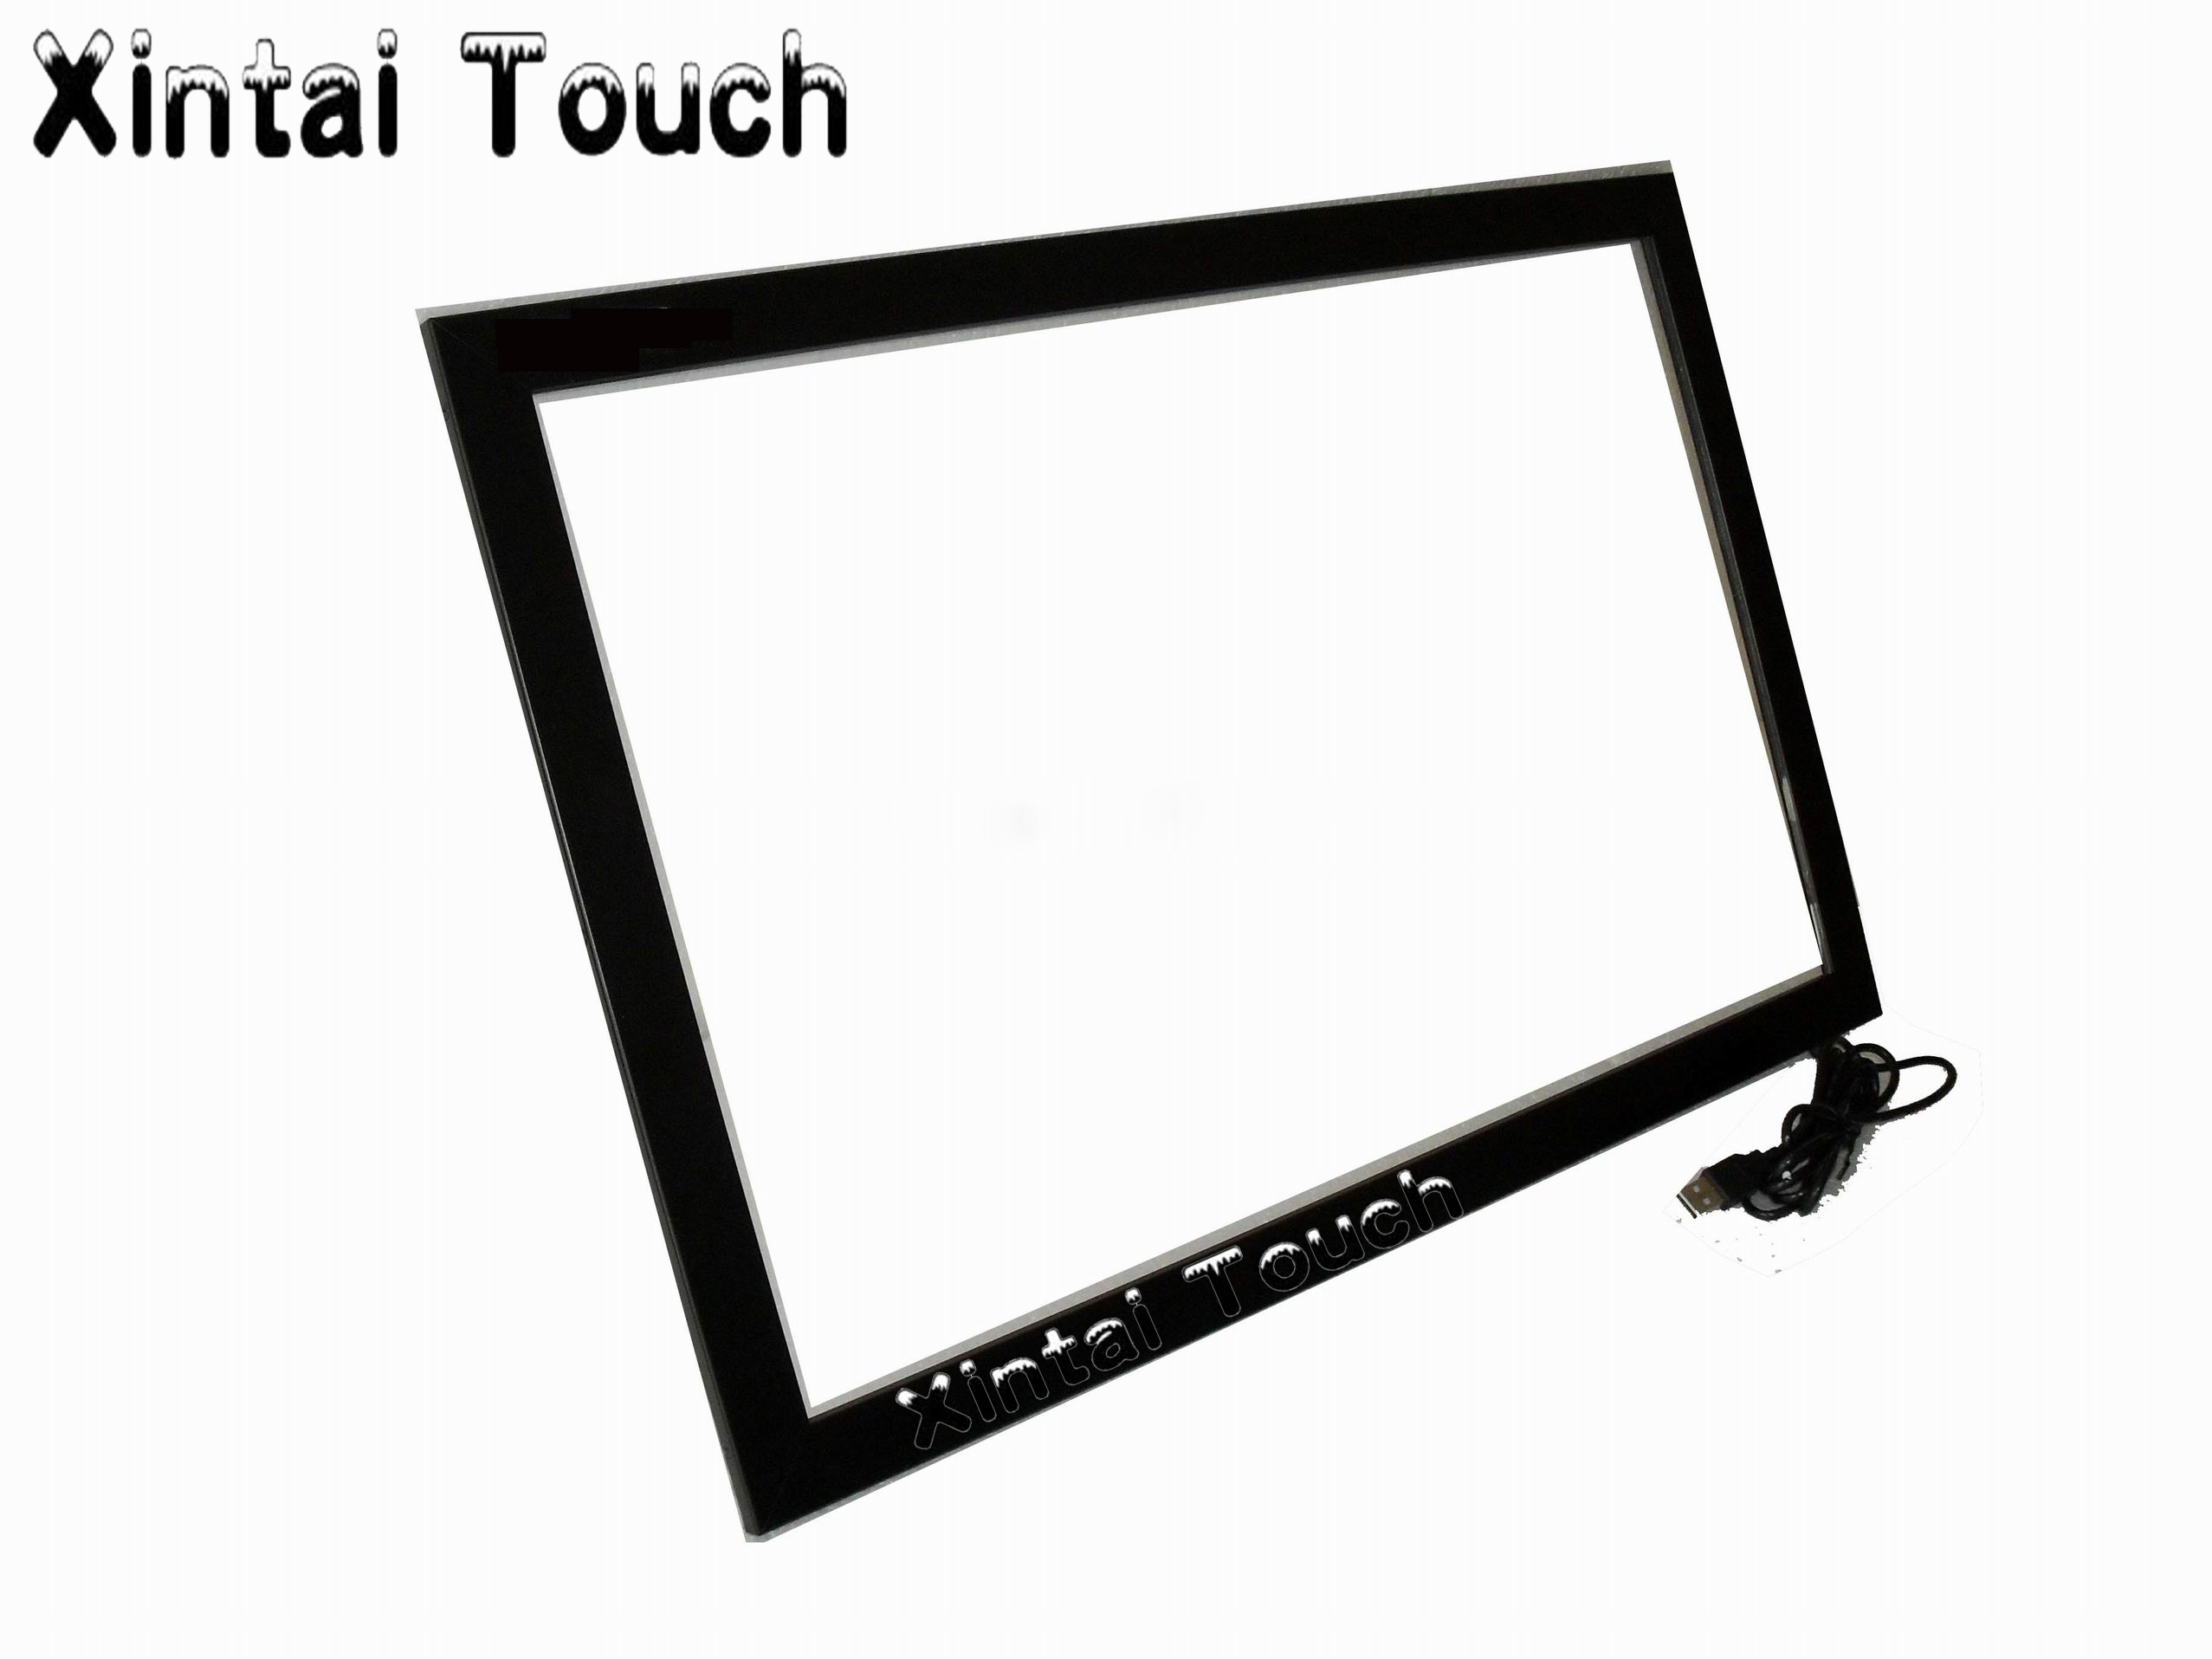 98 inch infrared Multi touch screen,10 touch points IR touch panel frame for smart tv,flat IR touch screen panel free shipping 20 multi ir touch frame 2 points infrared touch screen overlay kit for kiosk